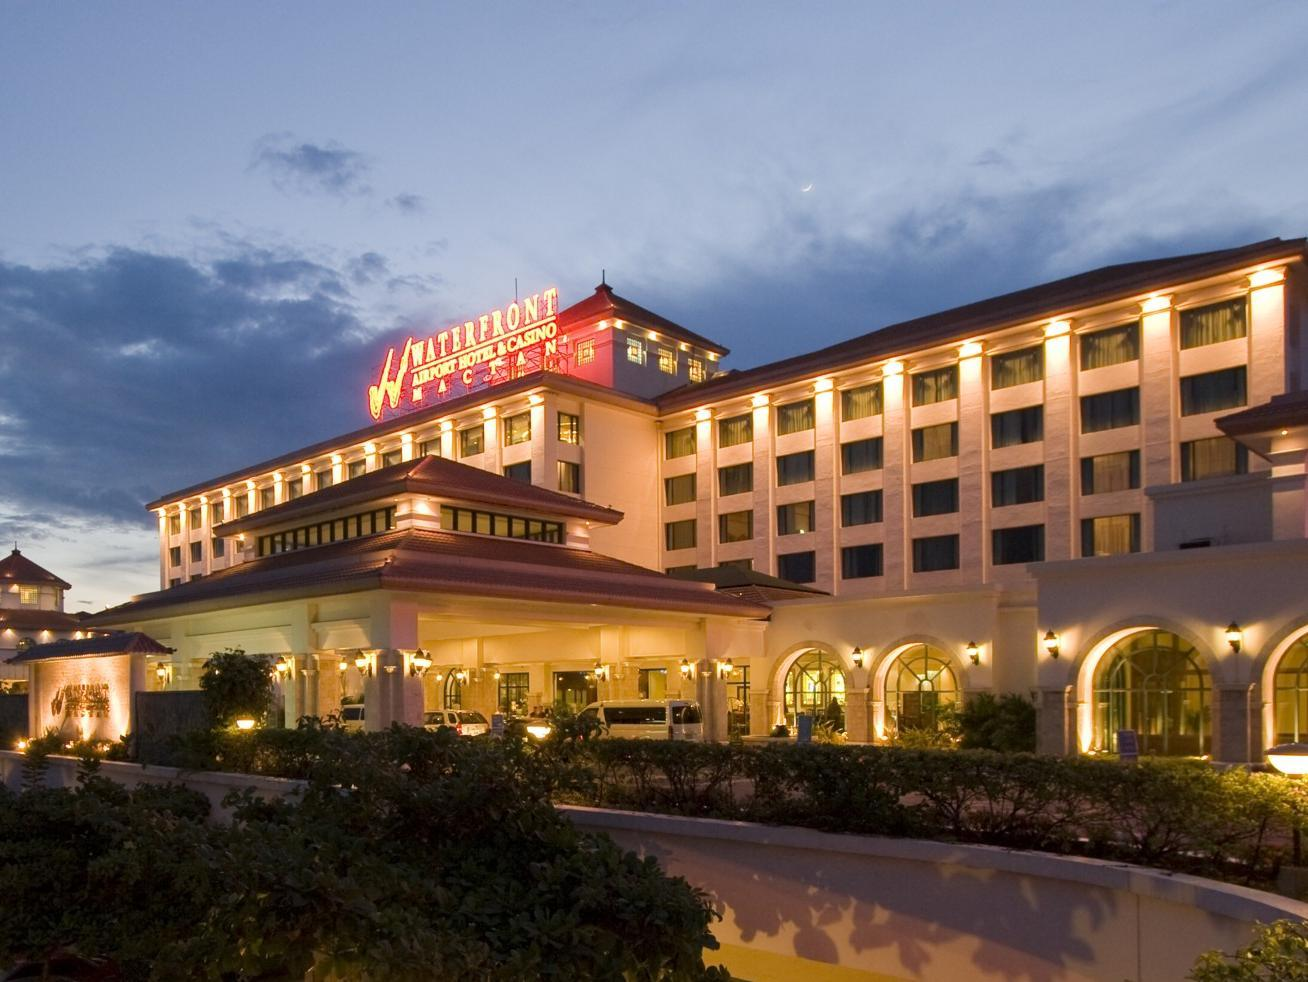 Waterfront Airport Hotel and Casino Sebu - Viesnīcas ārpuse